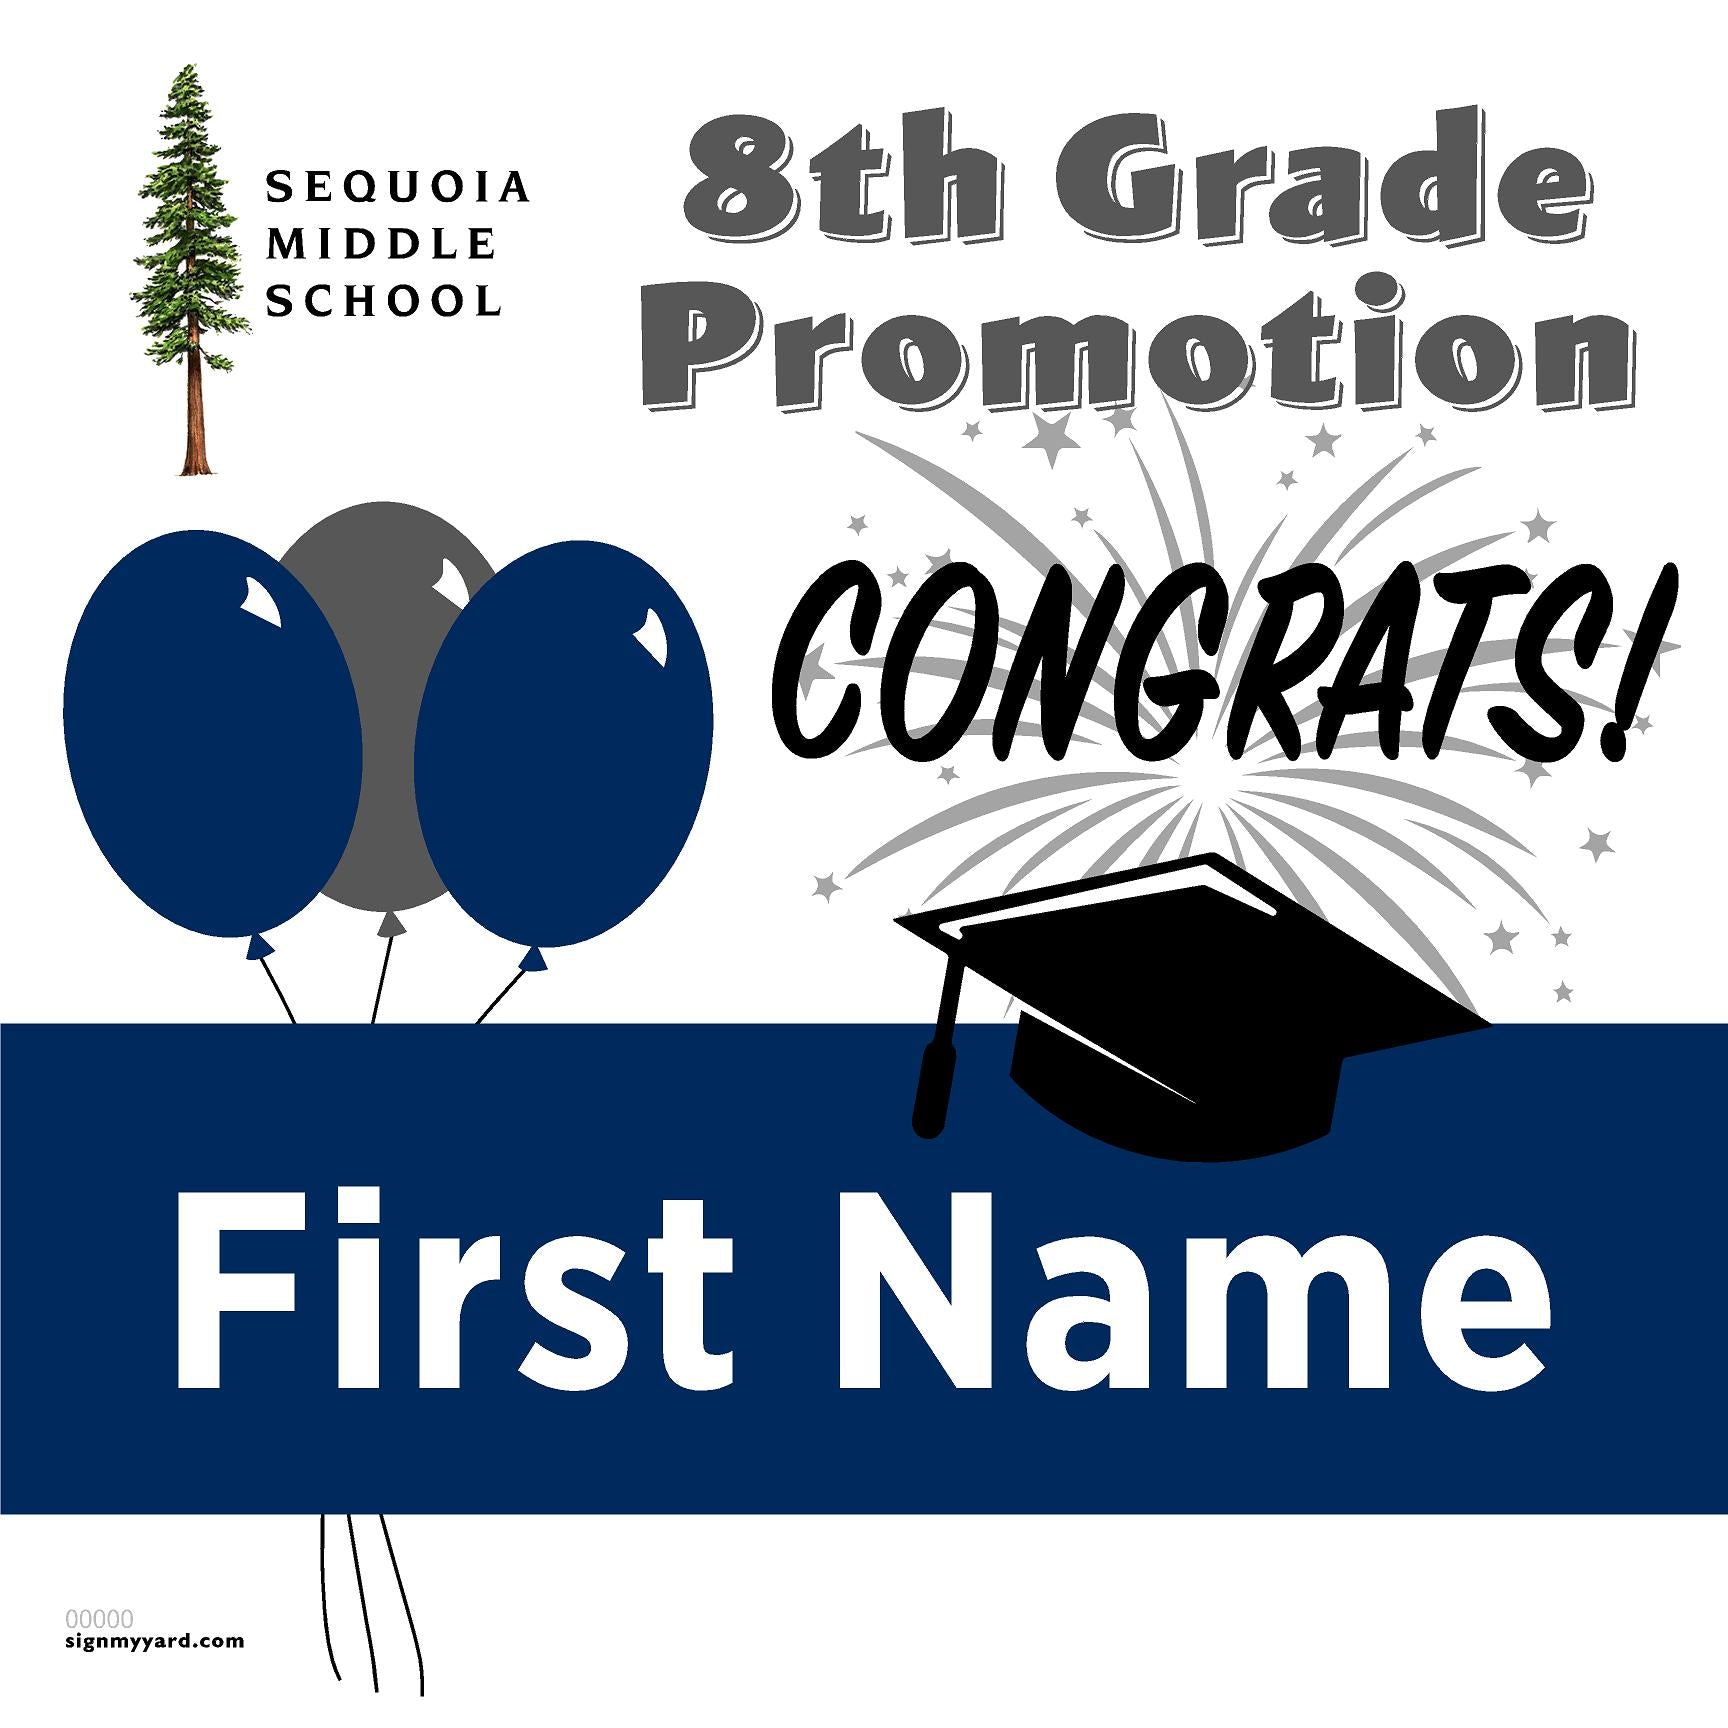 Sequoia Middle School 8th Grade Promotion 24x24 Yard Sign (Option A)